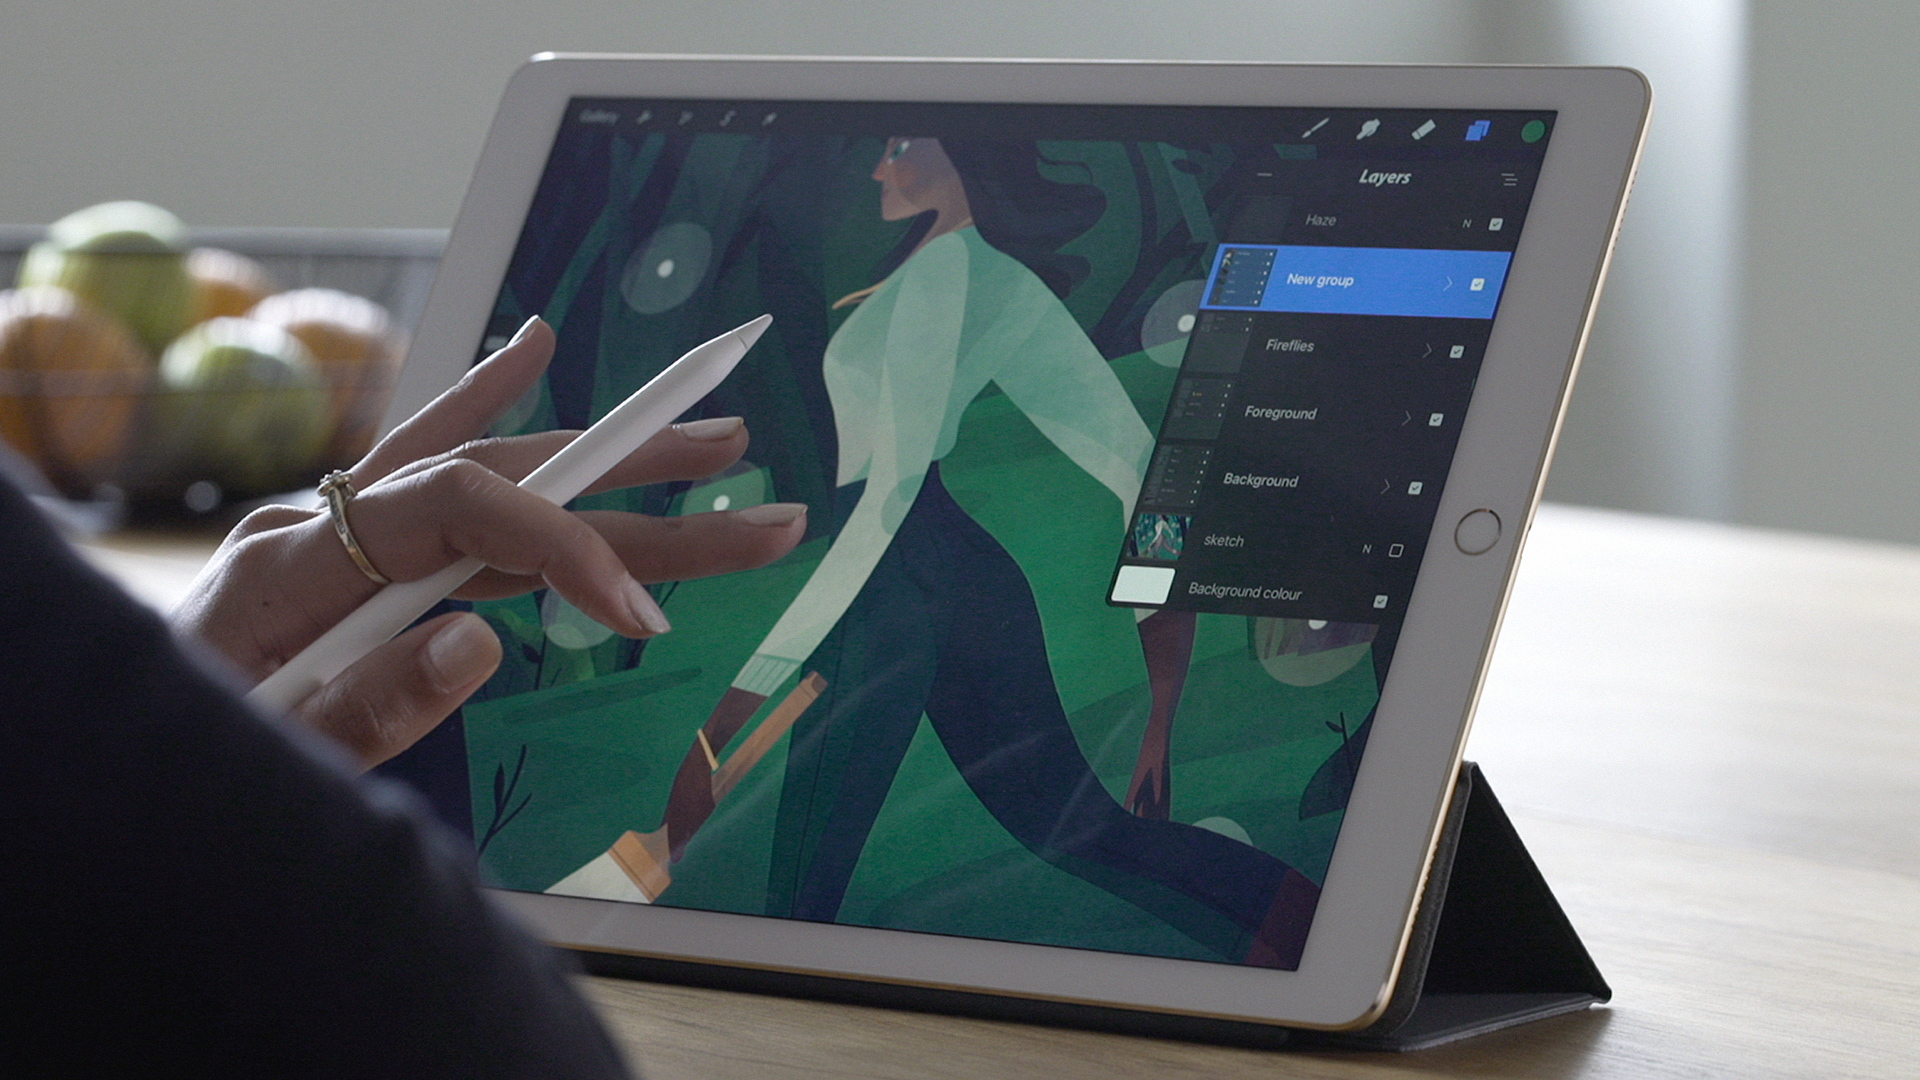 Massive Procreate for iPad update available with QuickShape & Gallery Preview features, much more